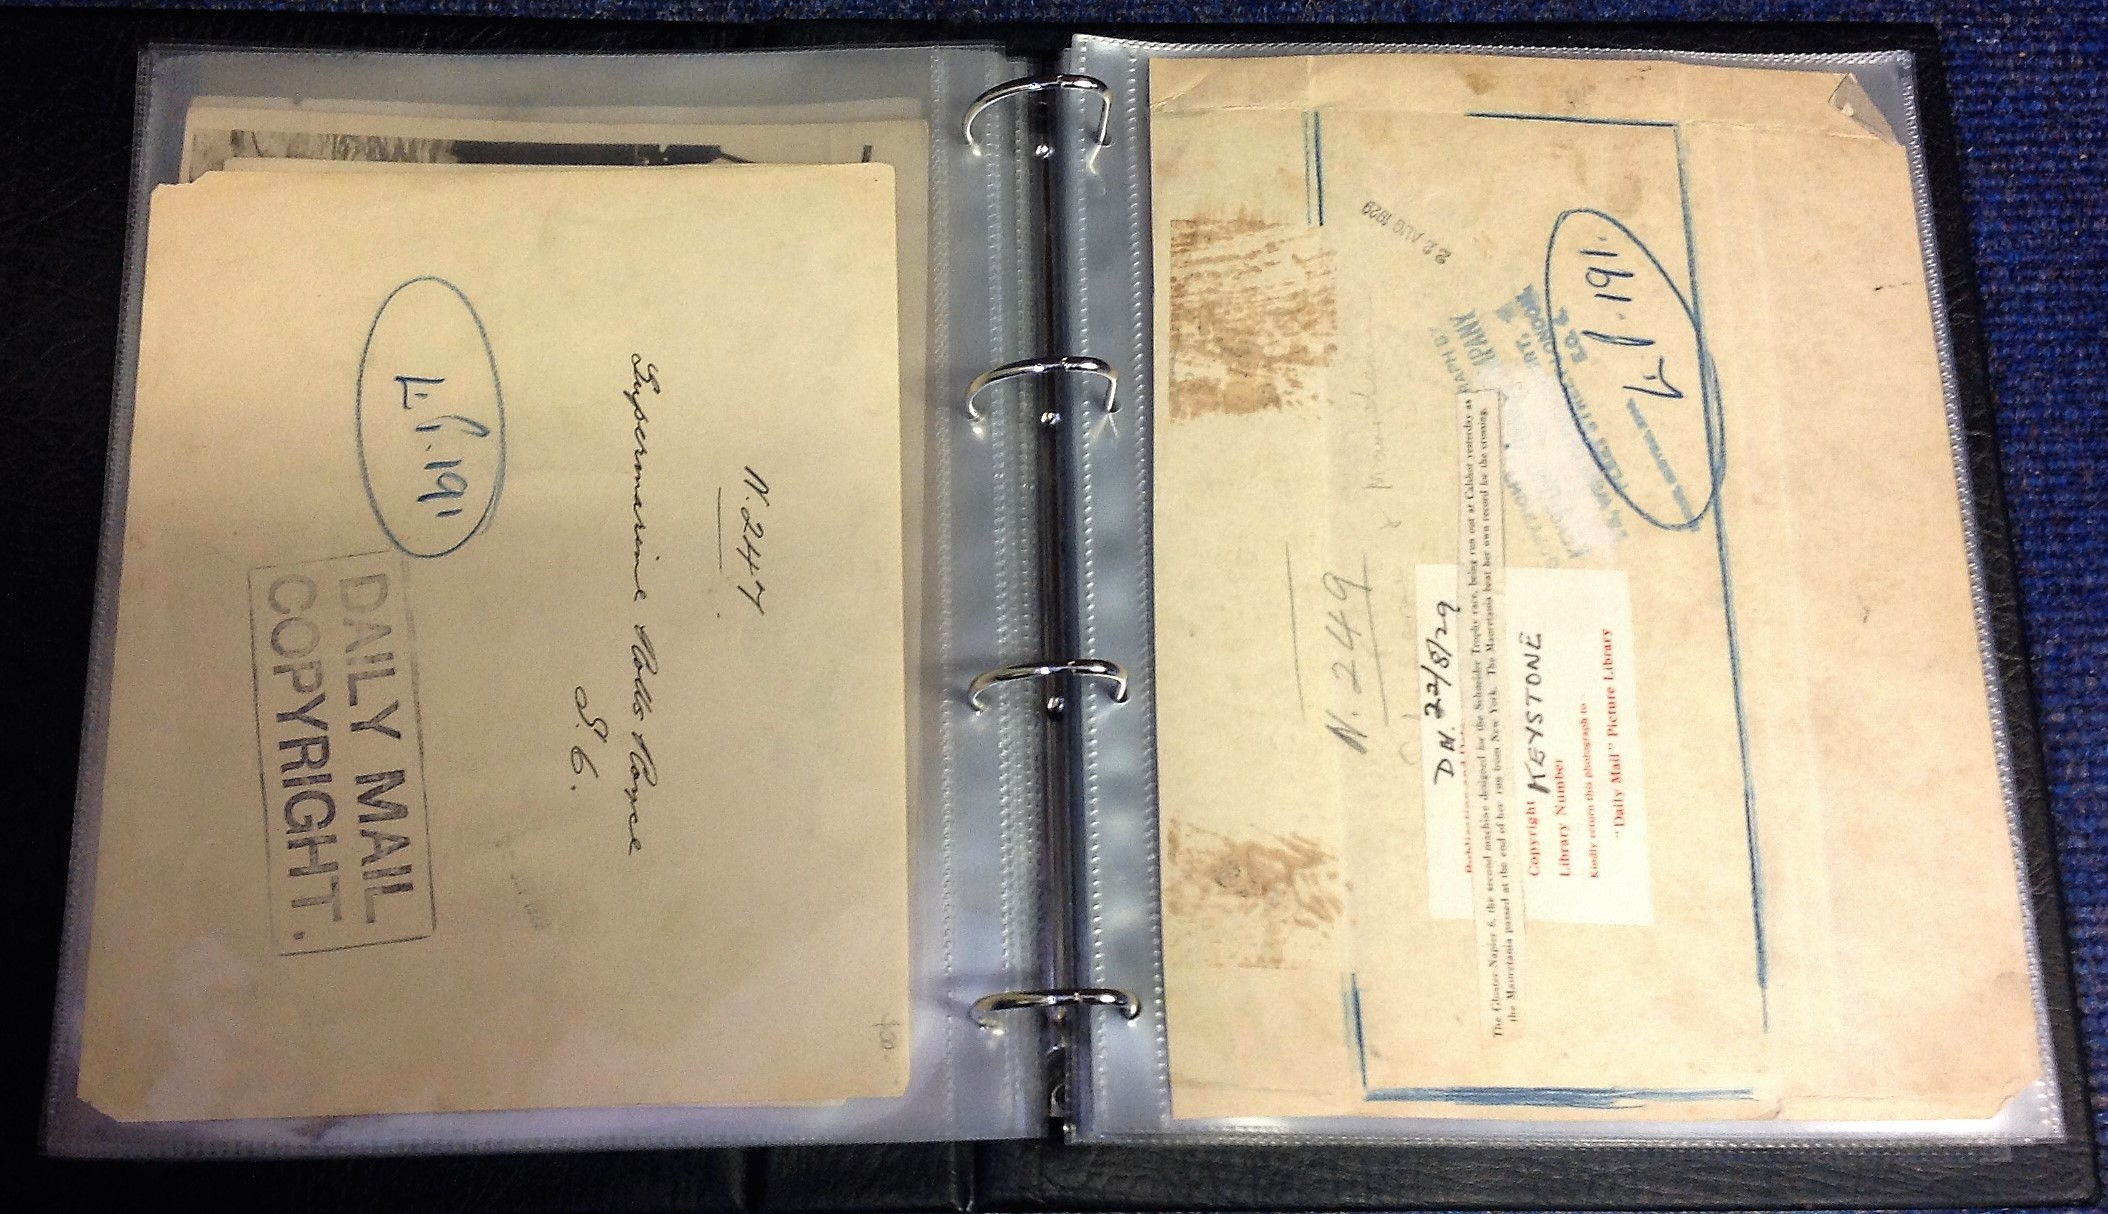 Lot 45 - 1900s SCHNEIDER TROPHY ARCHIVE: A wide-ranging collection of material relating to the Schneider